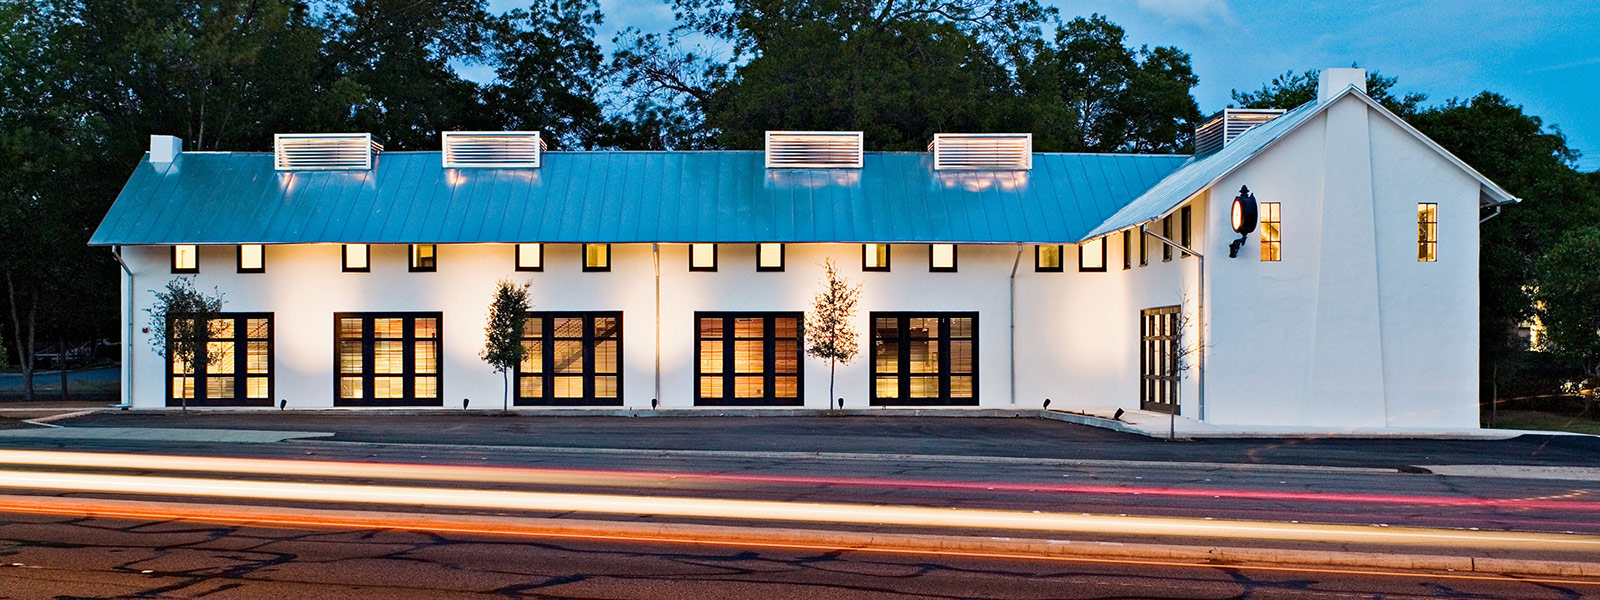 Exterior shot of John Grable Architects office building at night